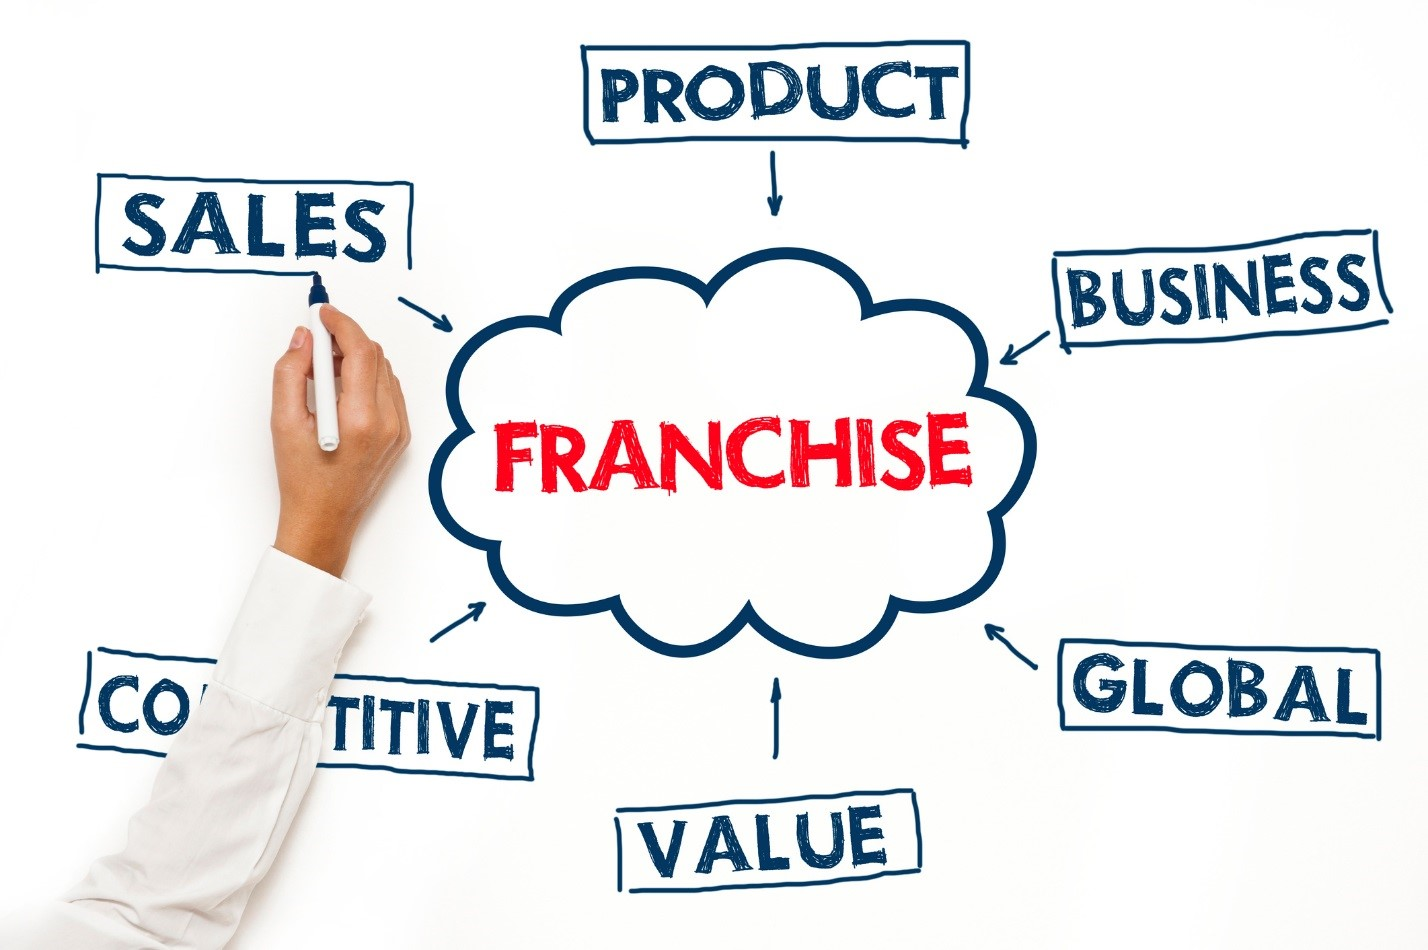 Franchise Ownership: Is It Right For Me - Oct 28, 2021